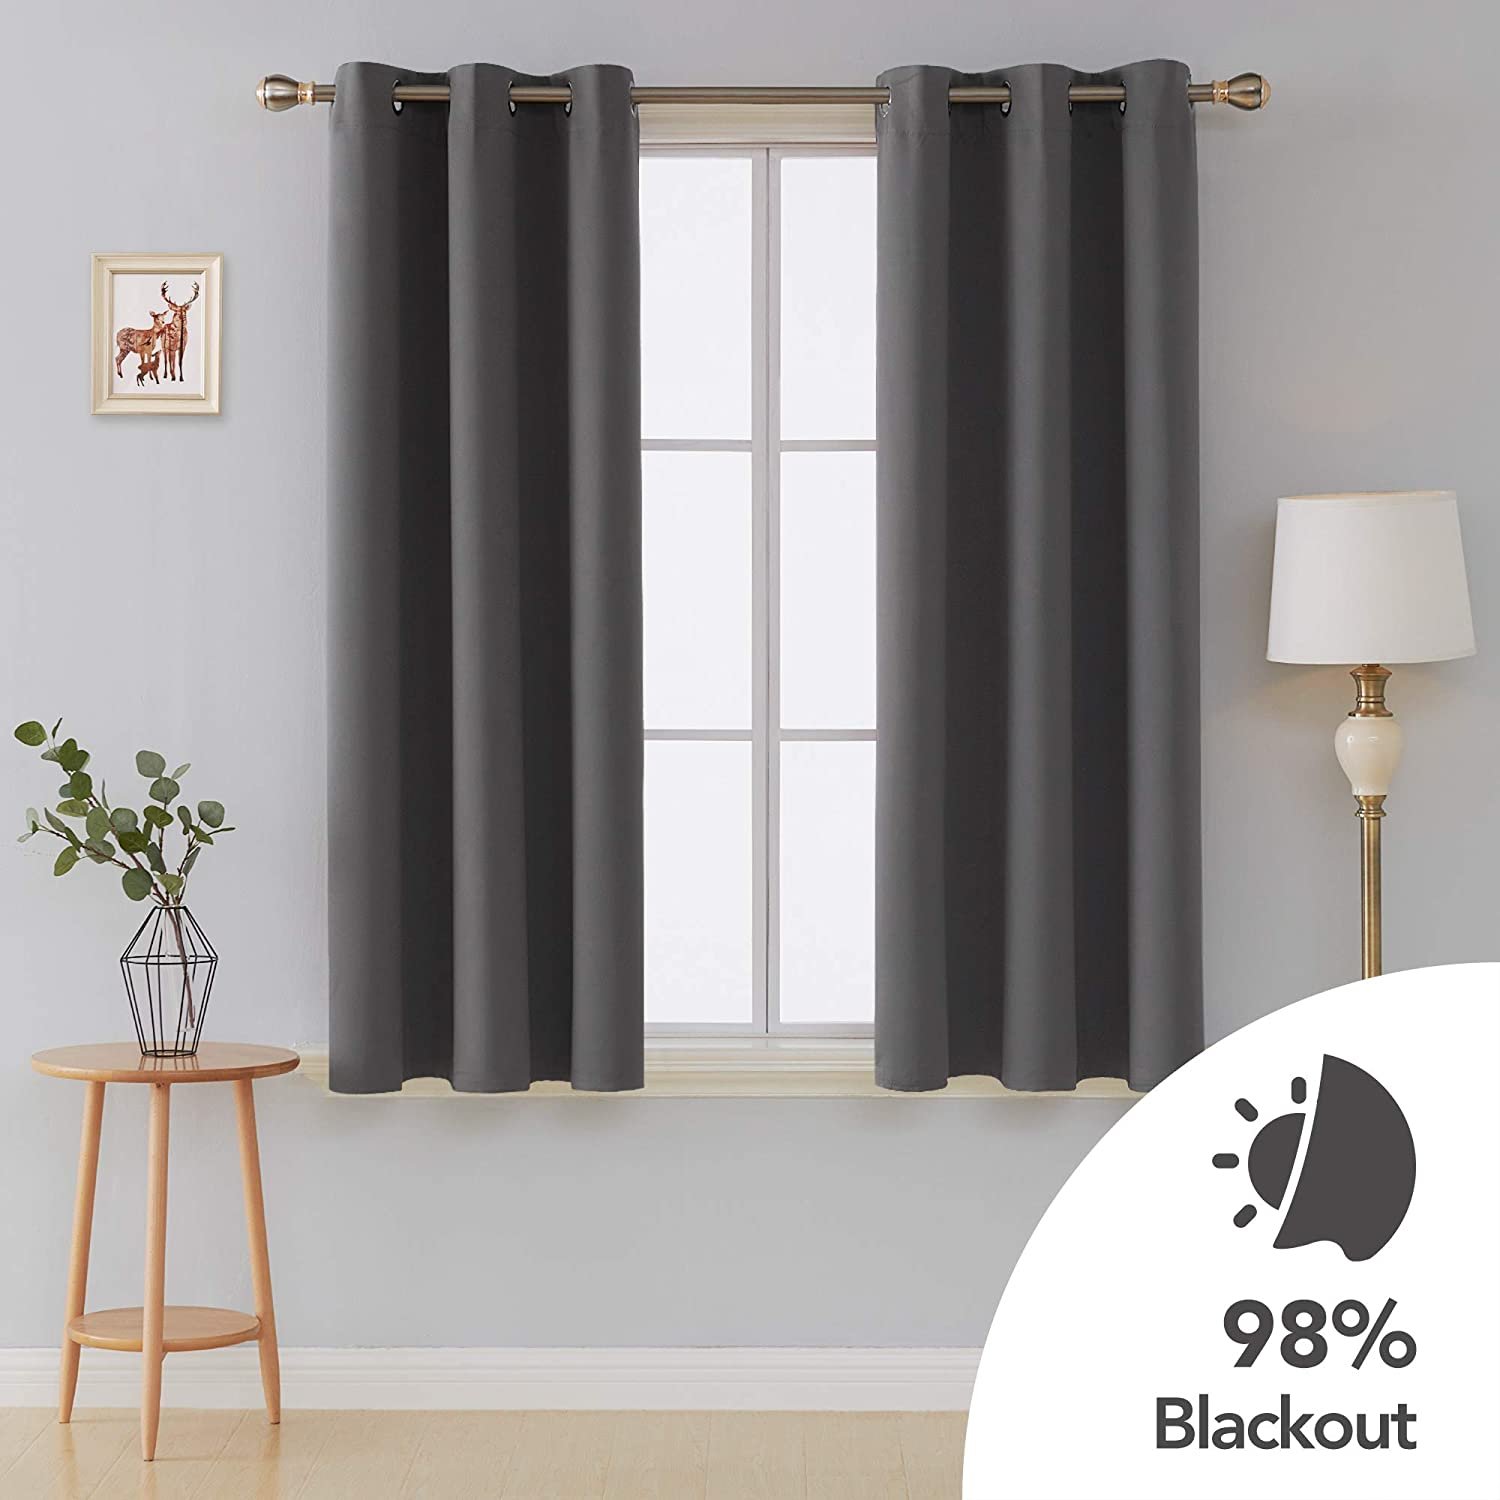 Deconovo Room Darkening Thermal Insulated Blackout Grommet Window Curtains Panels Set of 2 for Living Room Dark Grey 42x63 Inch